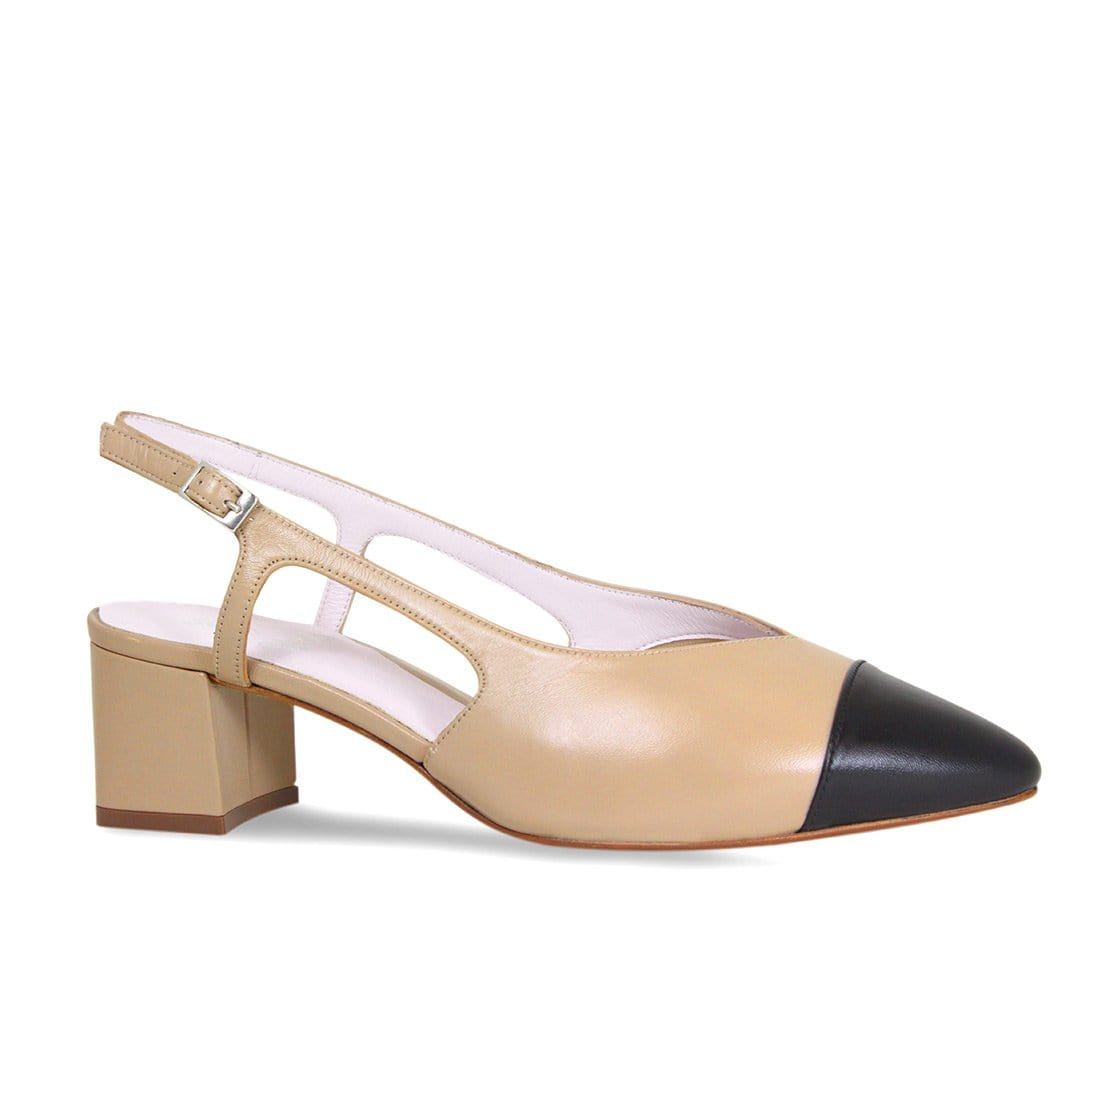 Nude & Black Leather Sling-Back Pumps